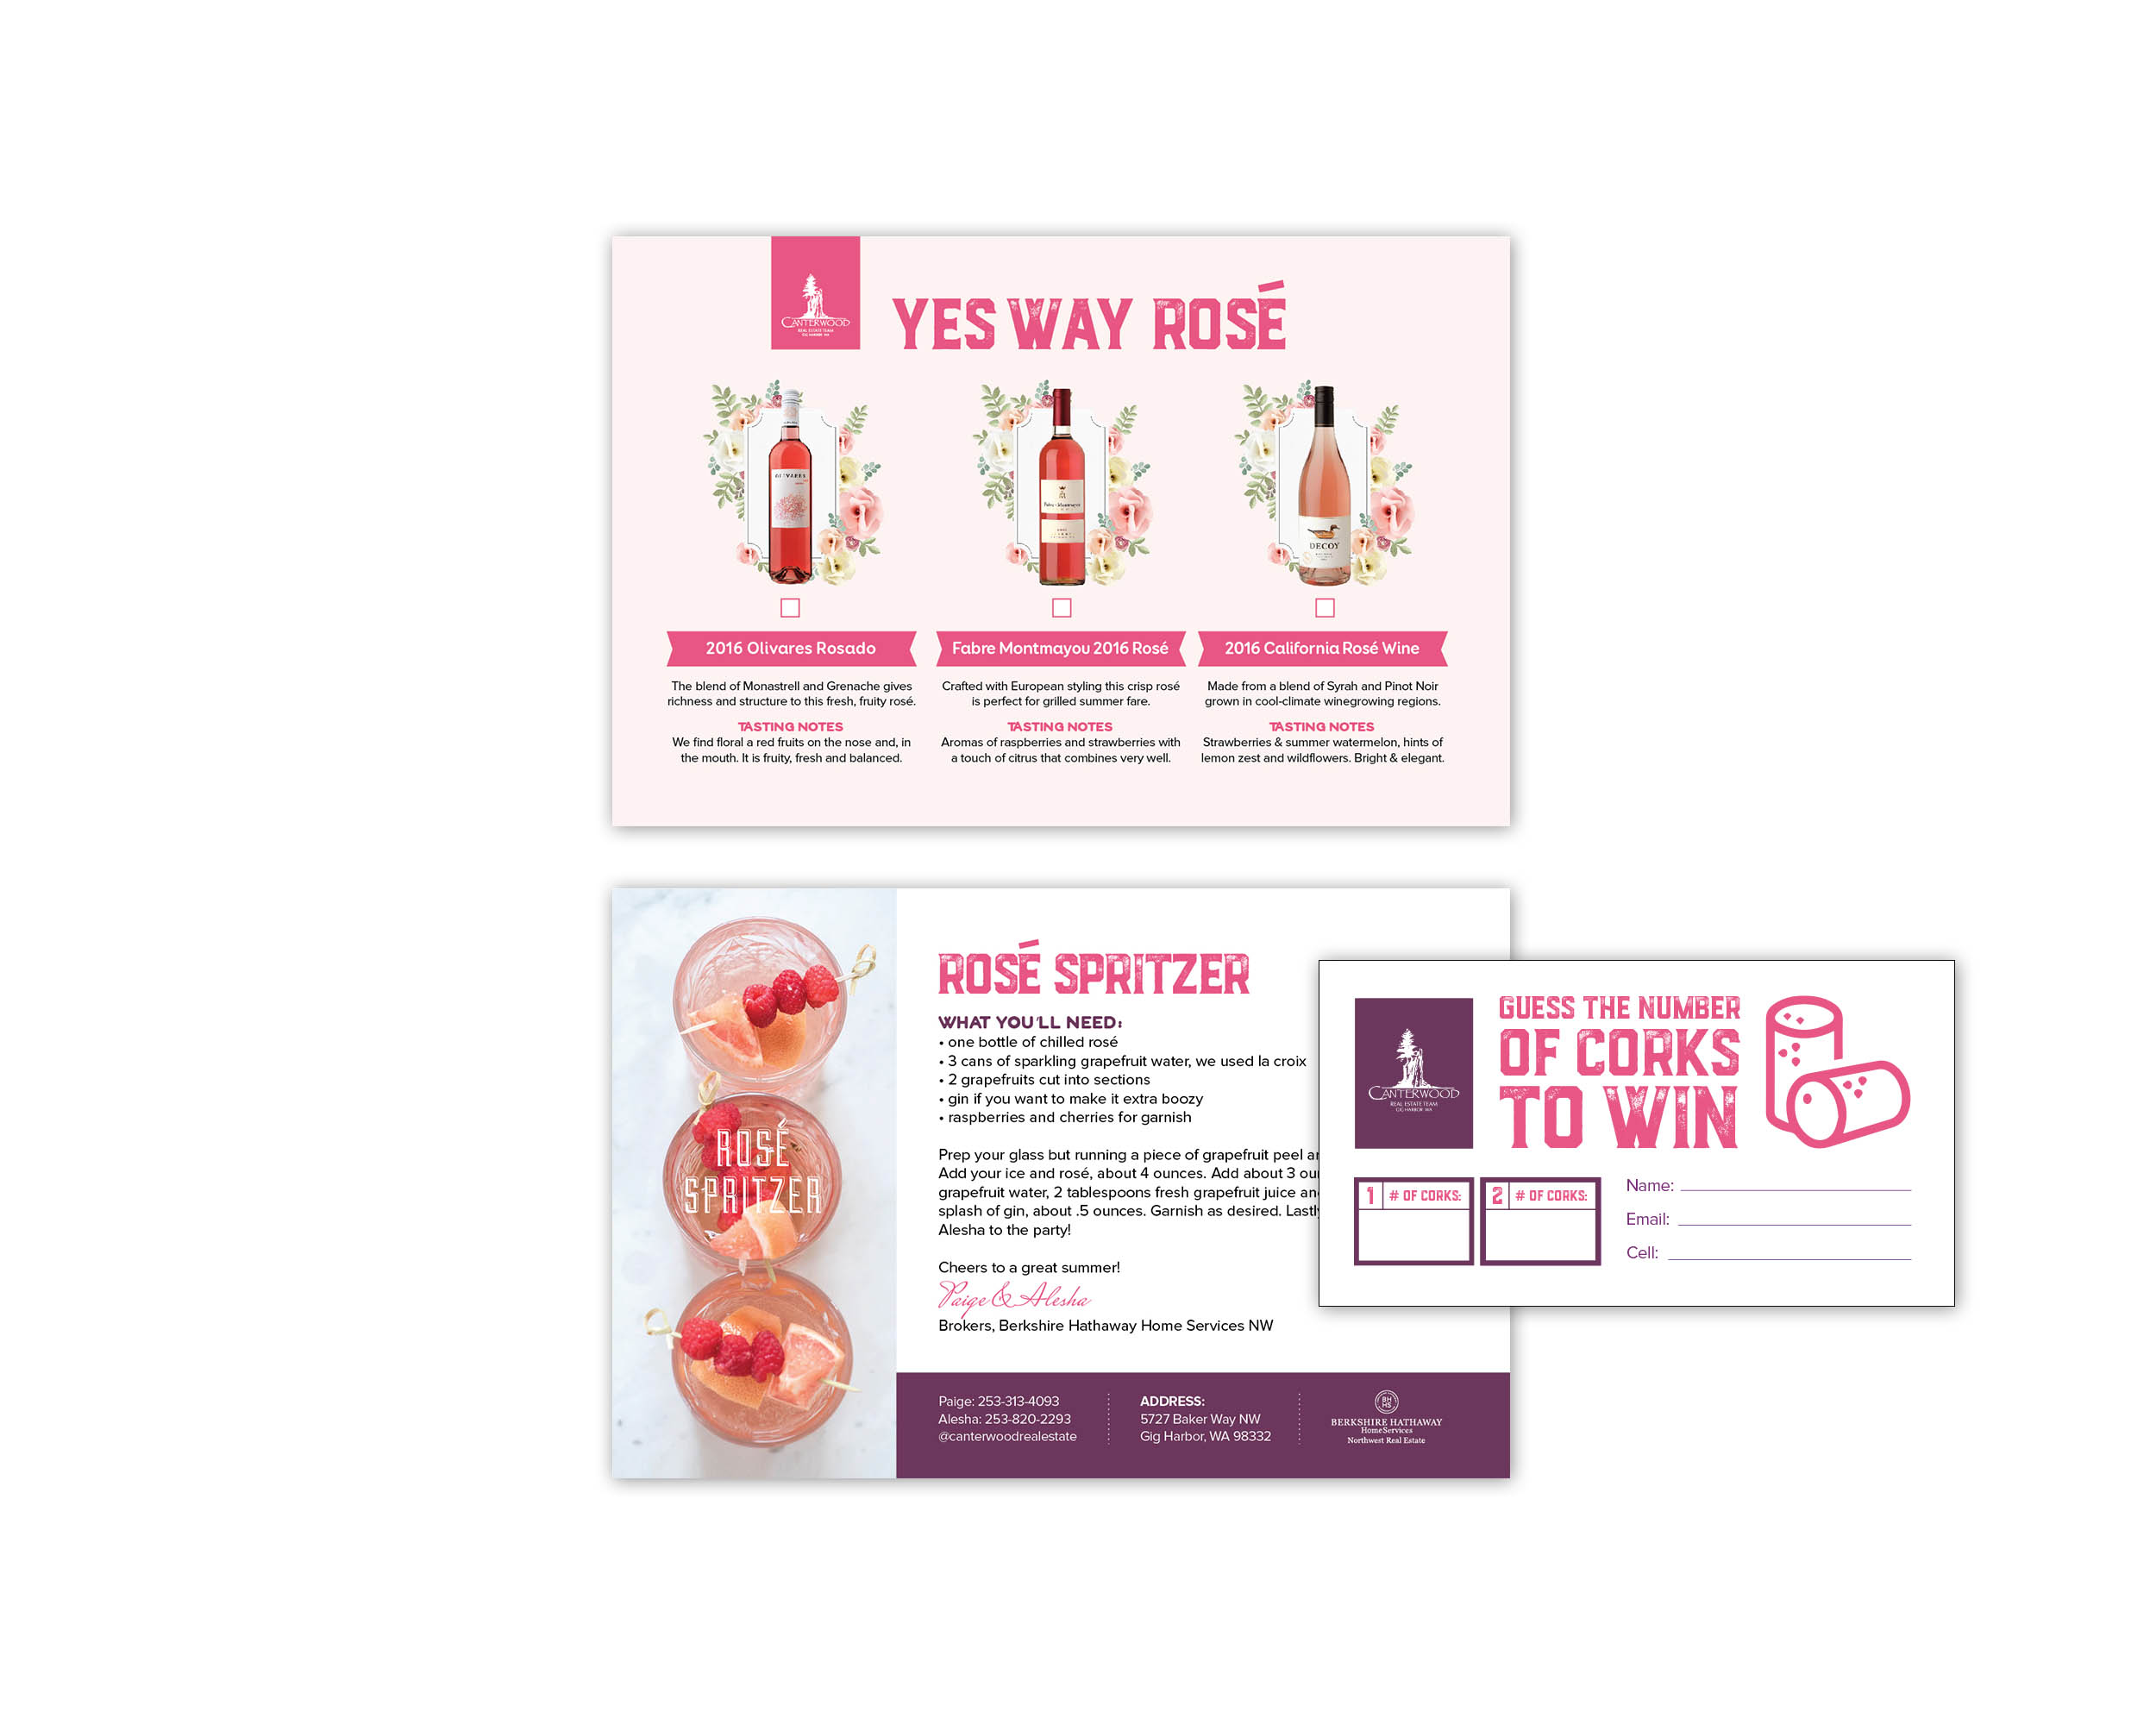 Yes Way Rosé Postcard, Recipe Card and Contest Card